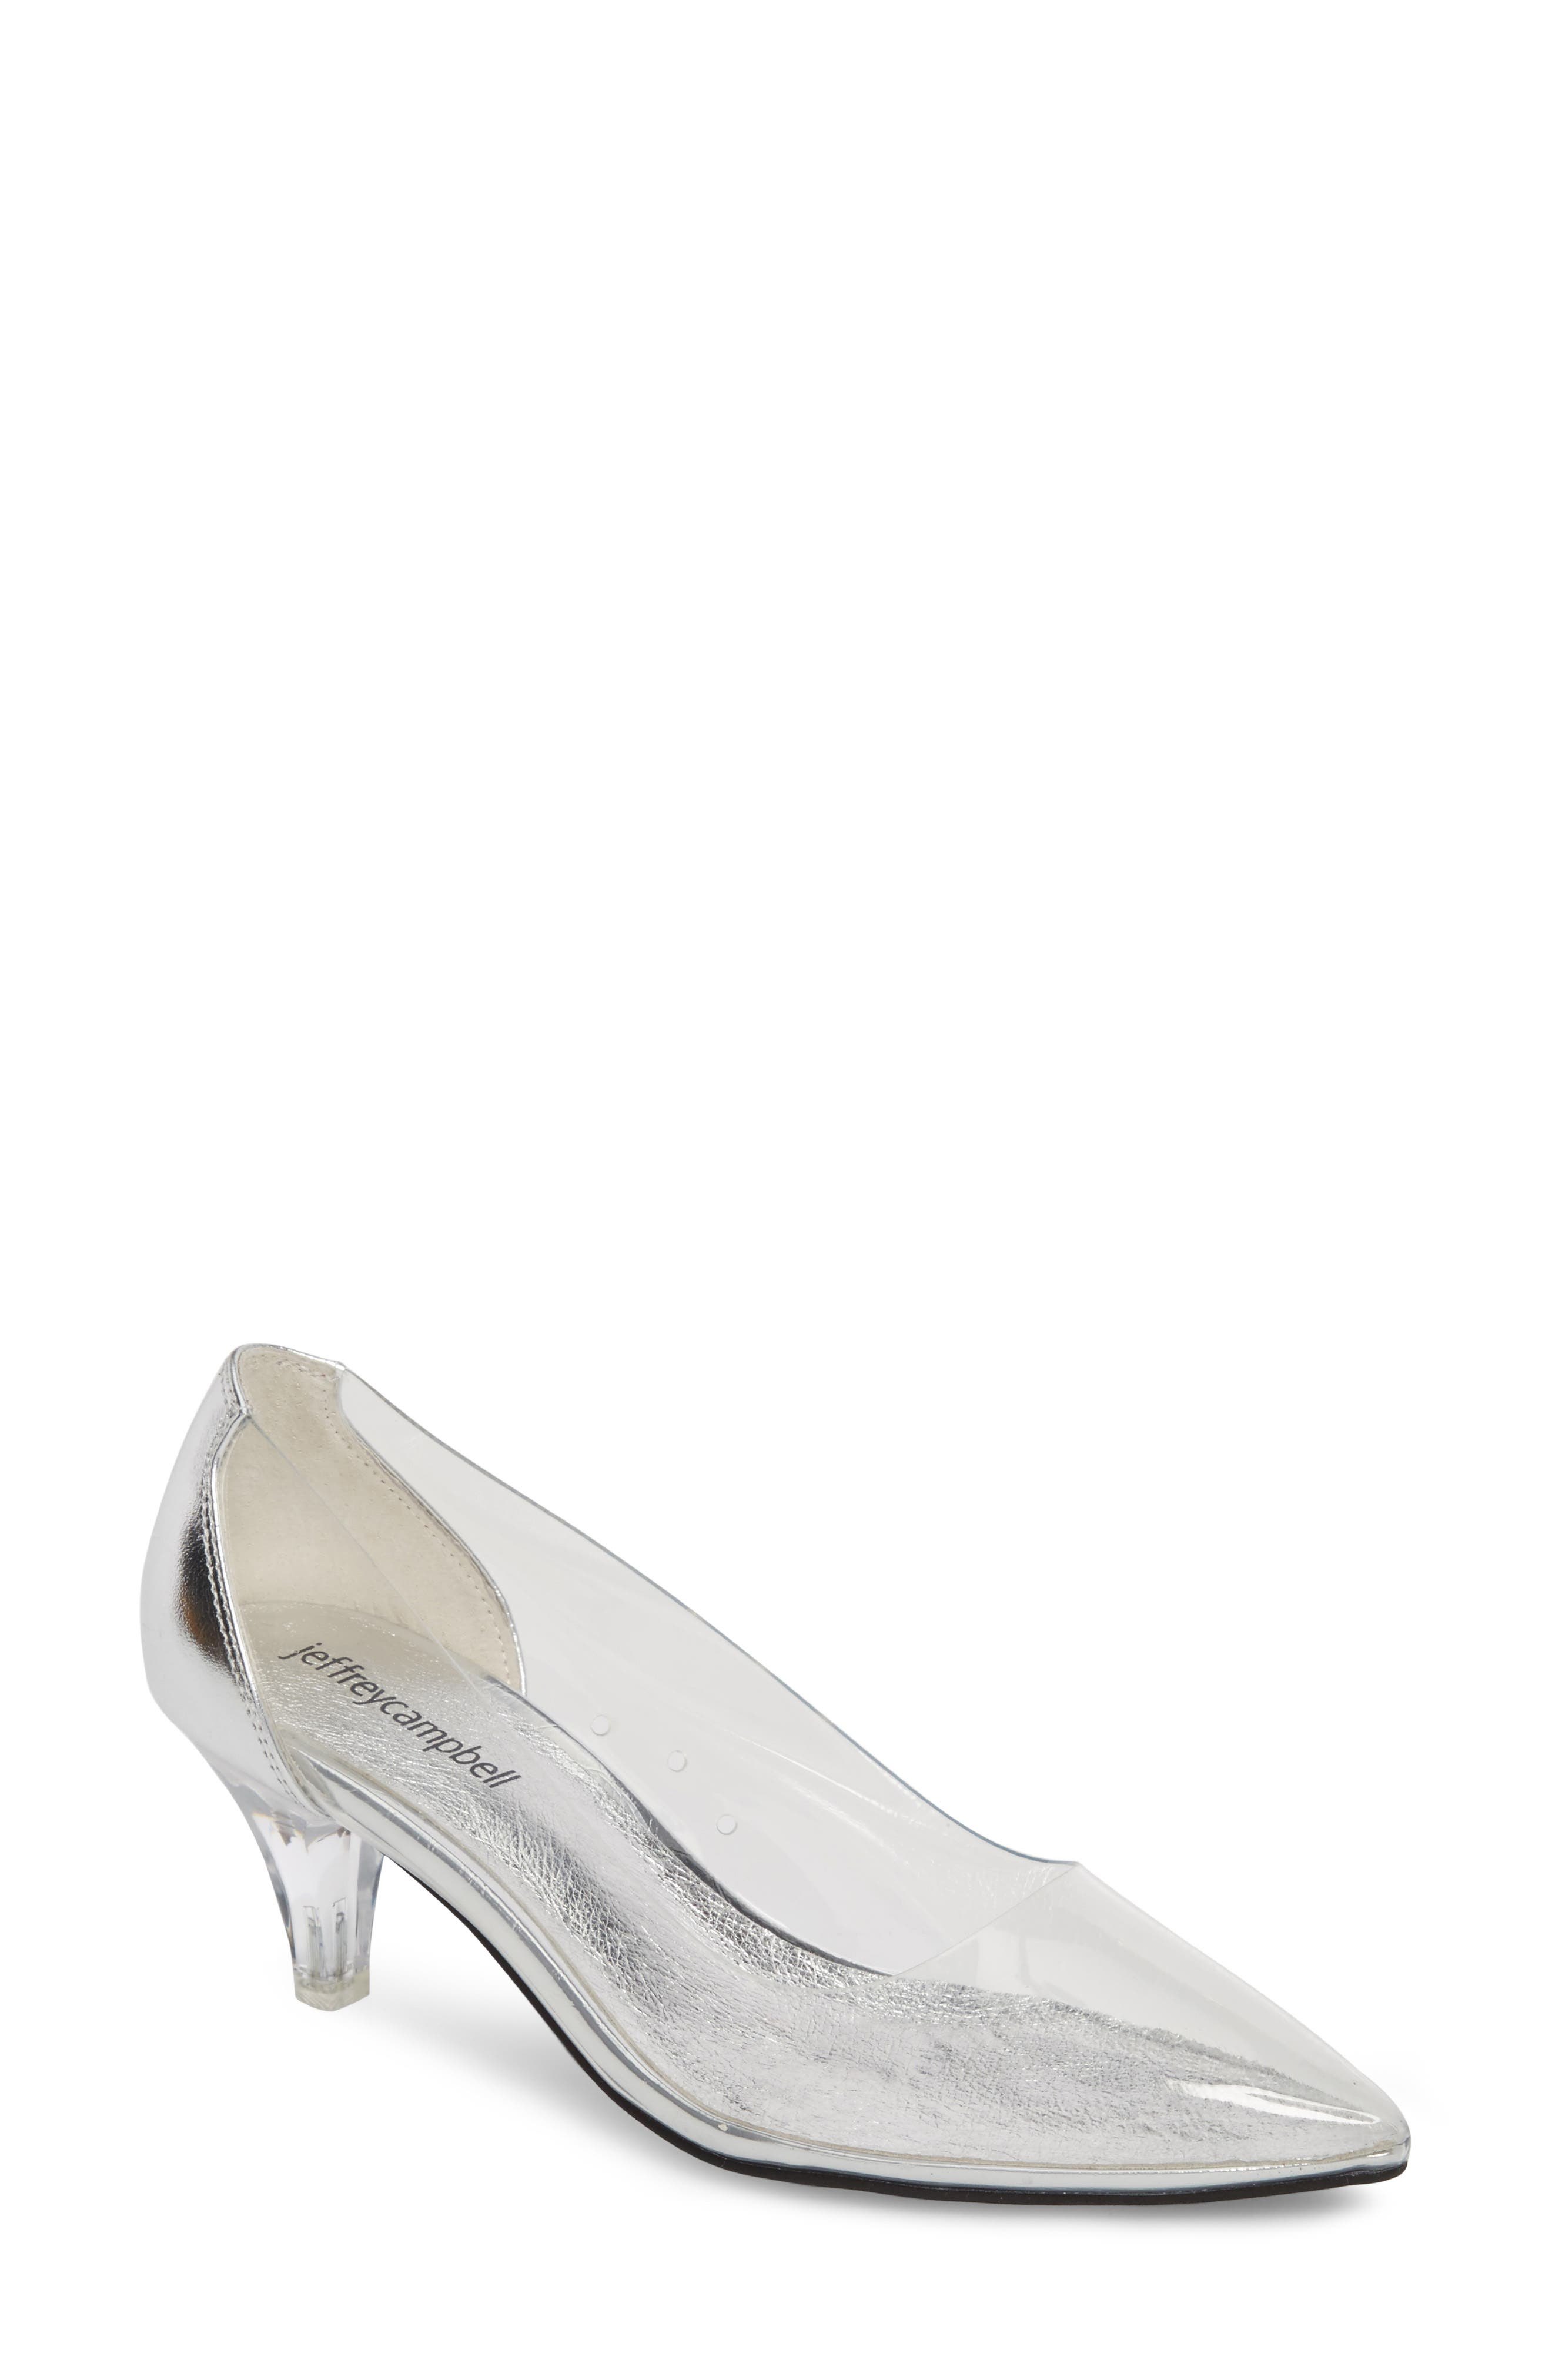 Gracienne Transparent Pump,                             Main thumbnail 1, color,                             CLEAR/ SILVER LEATHER